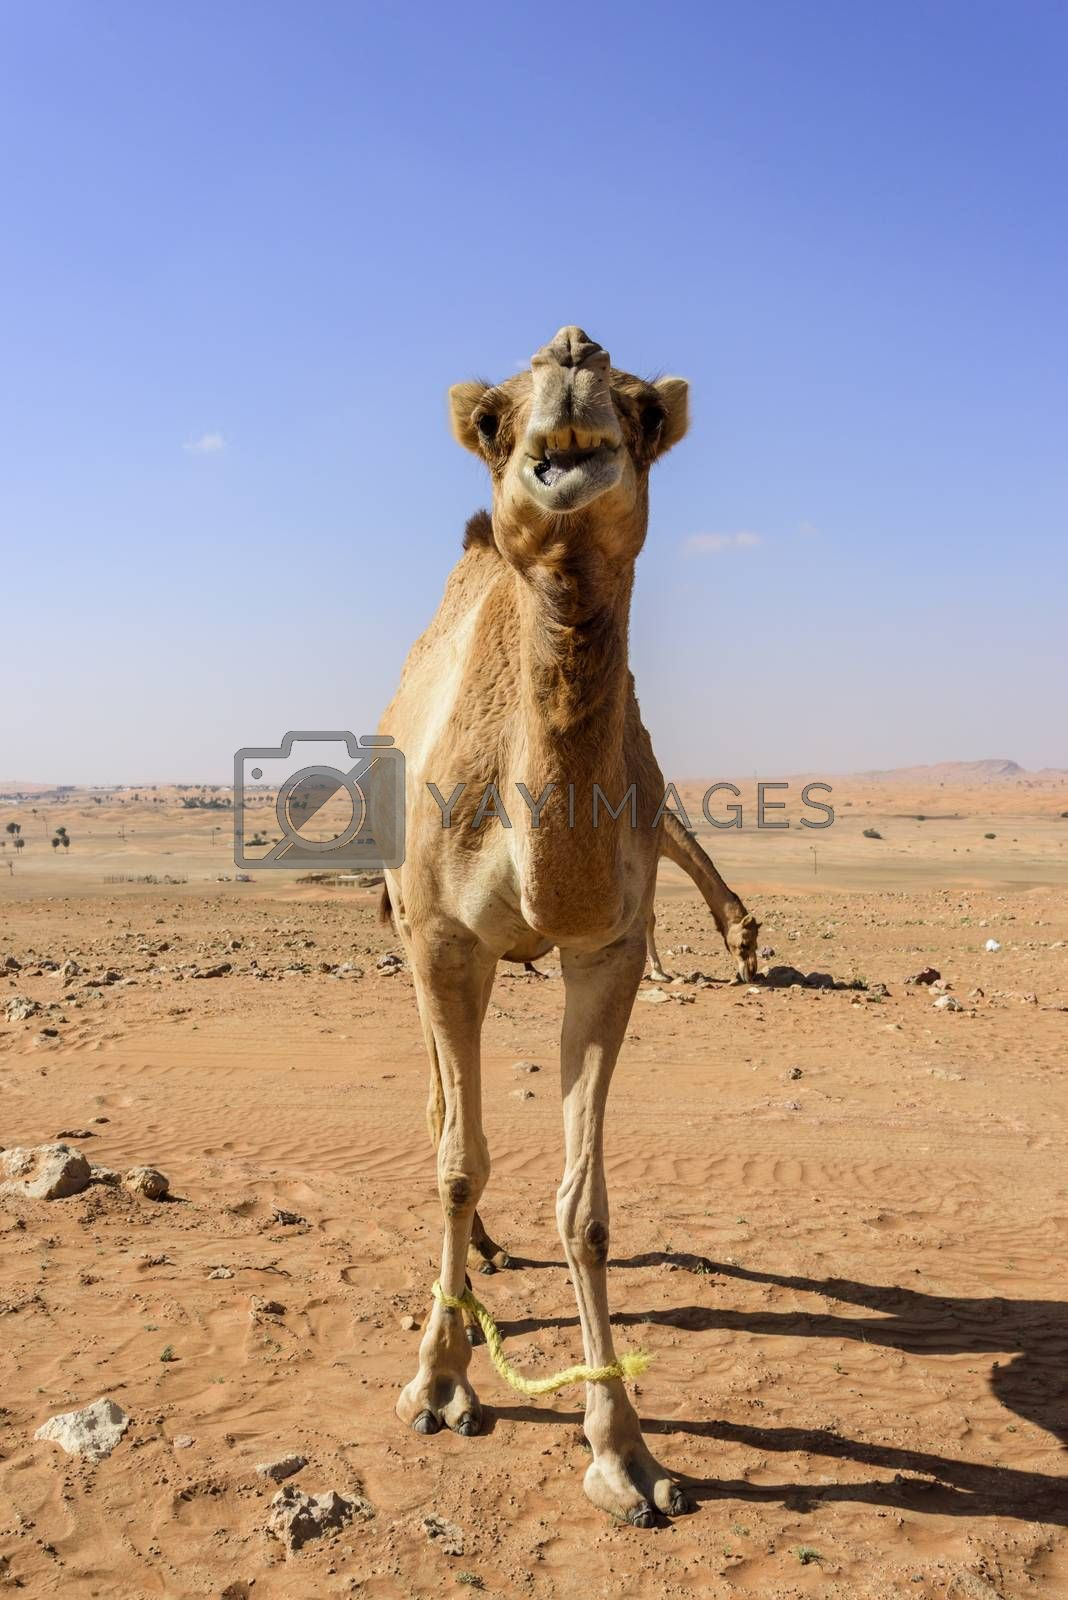 Camel looking at the camera with the front legs attached (to avoid the camels to go to far from the farm)